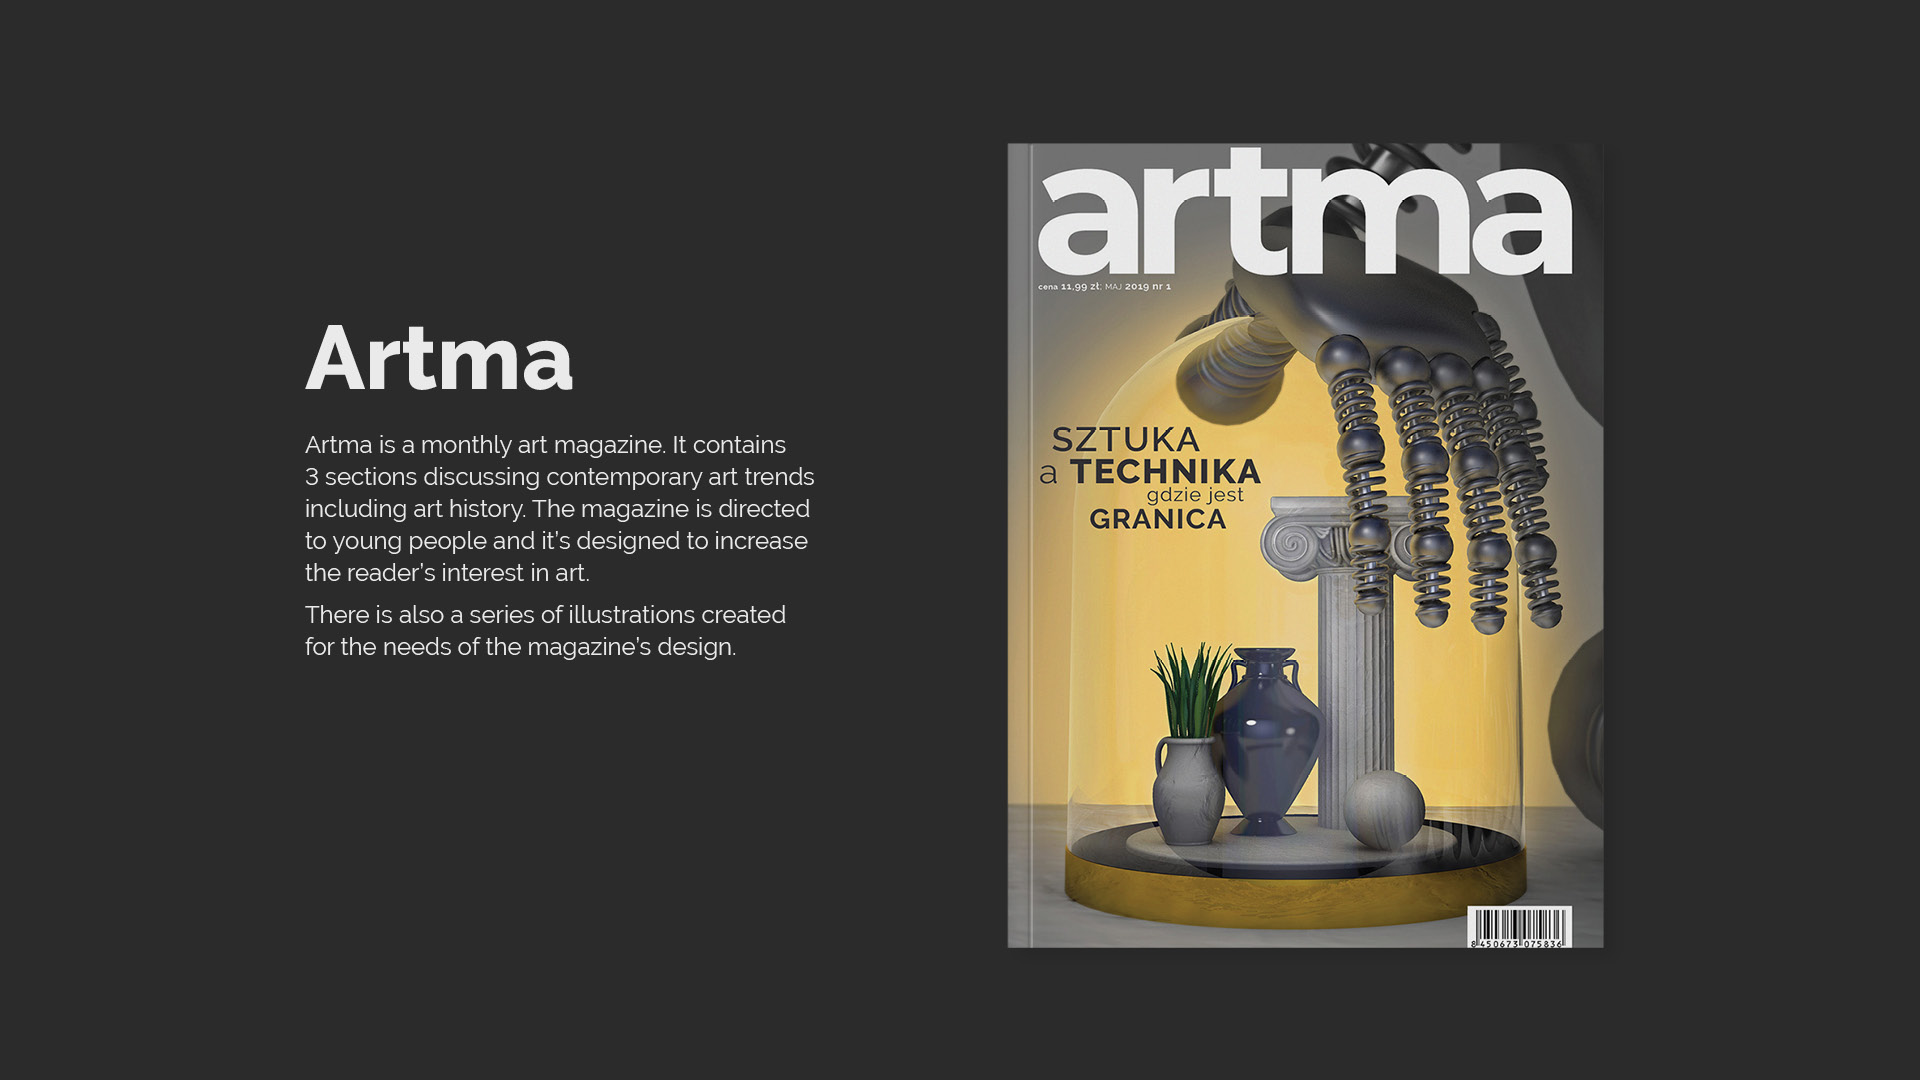 Artma. Magazine about art. Cover with a 3D illustration